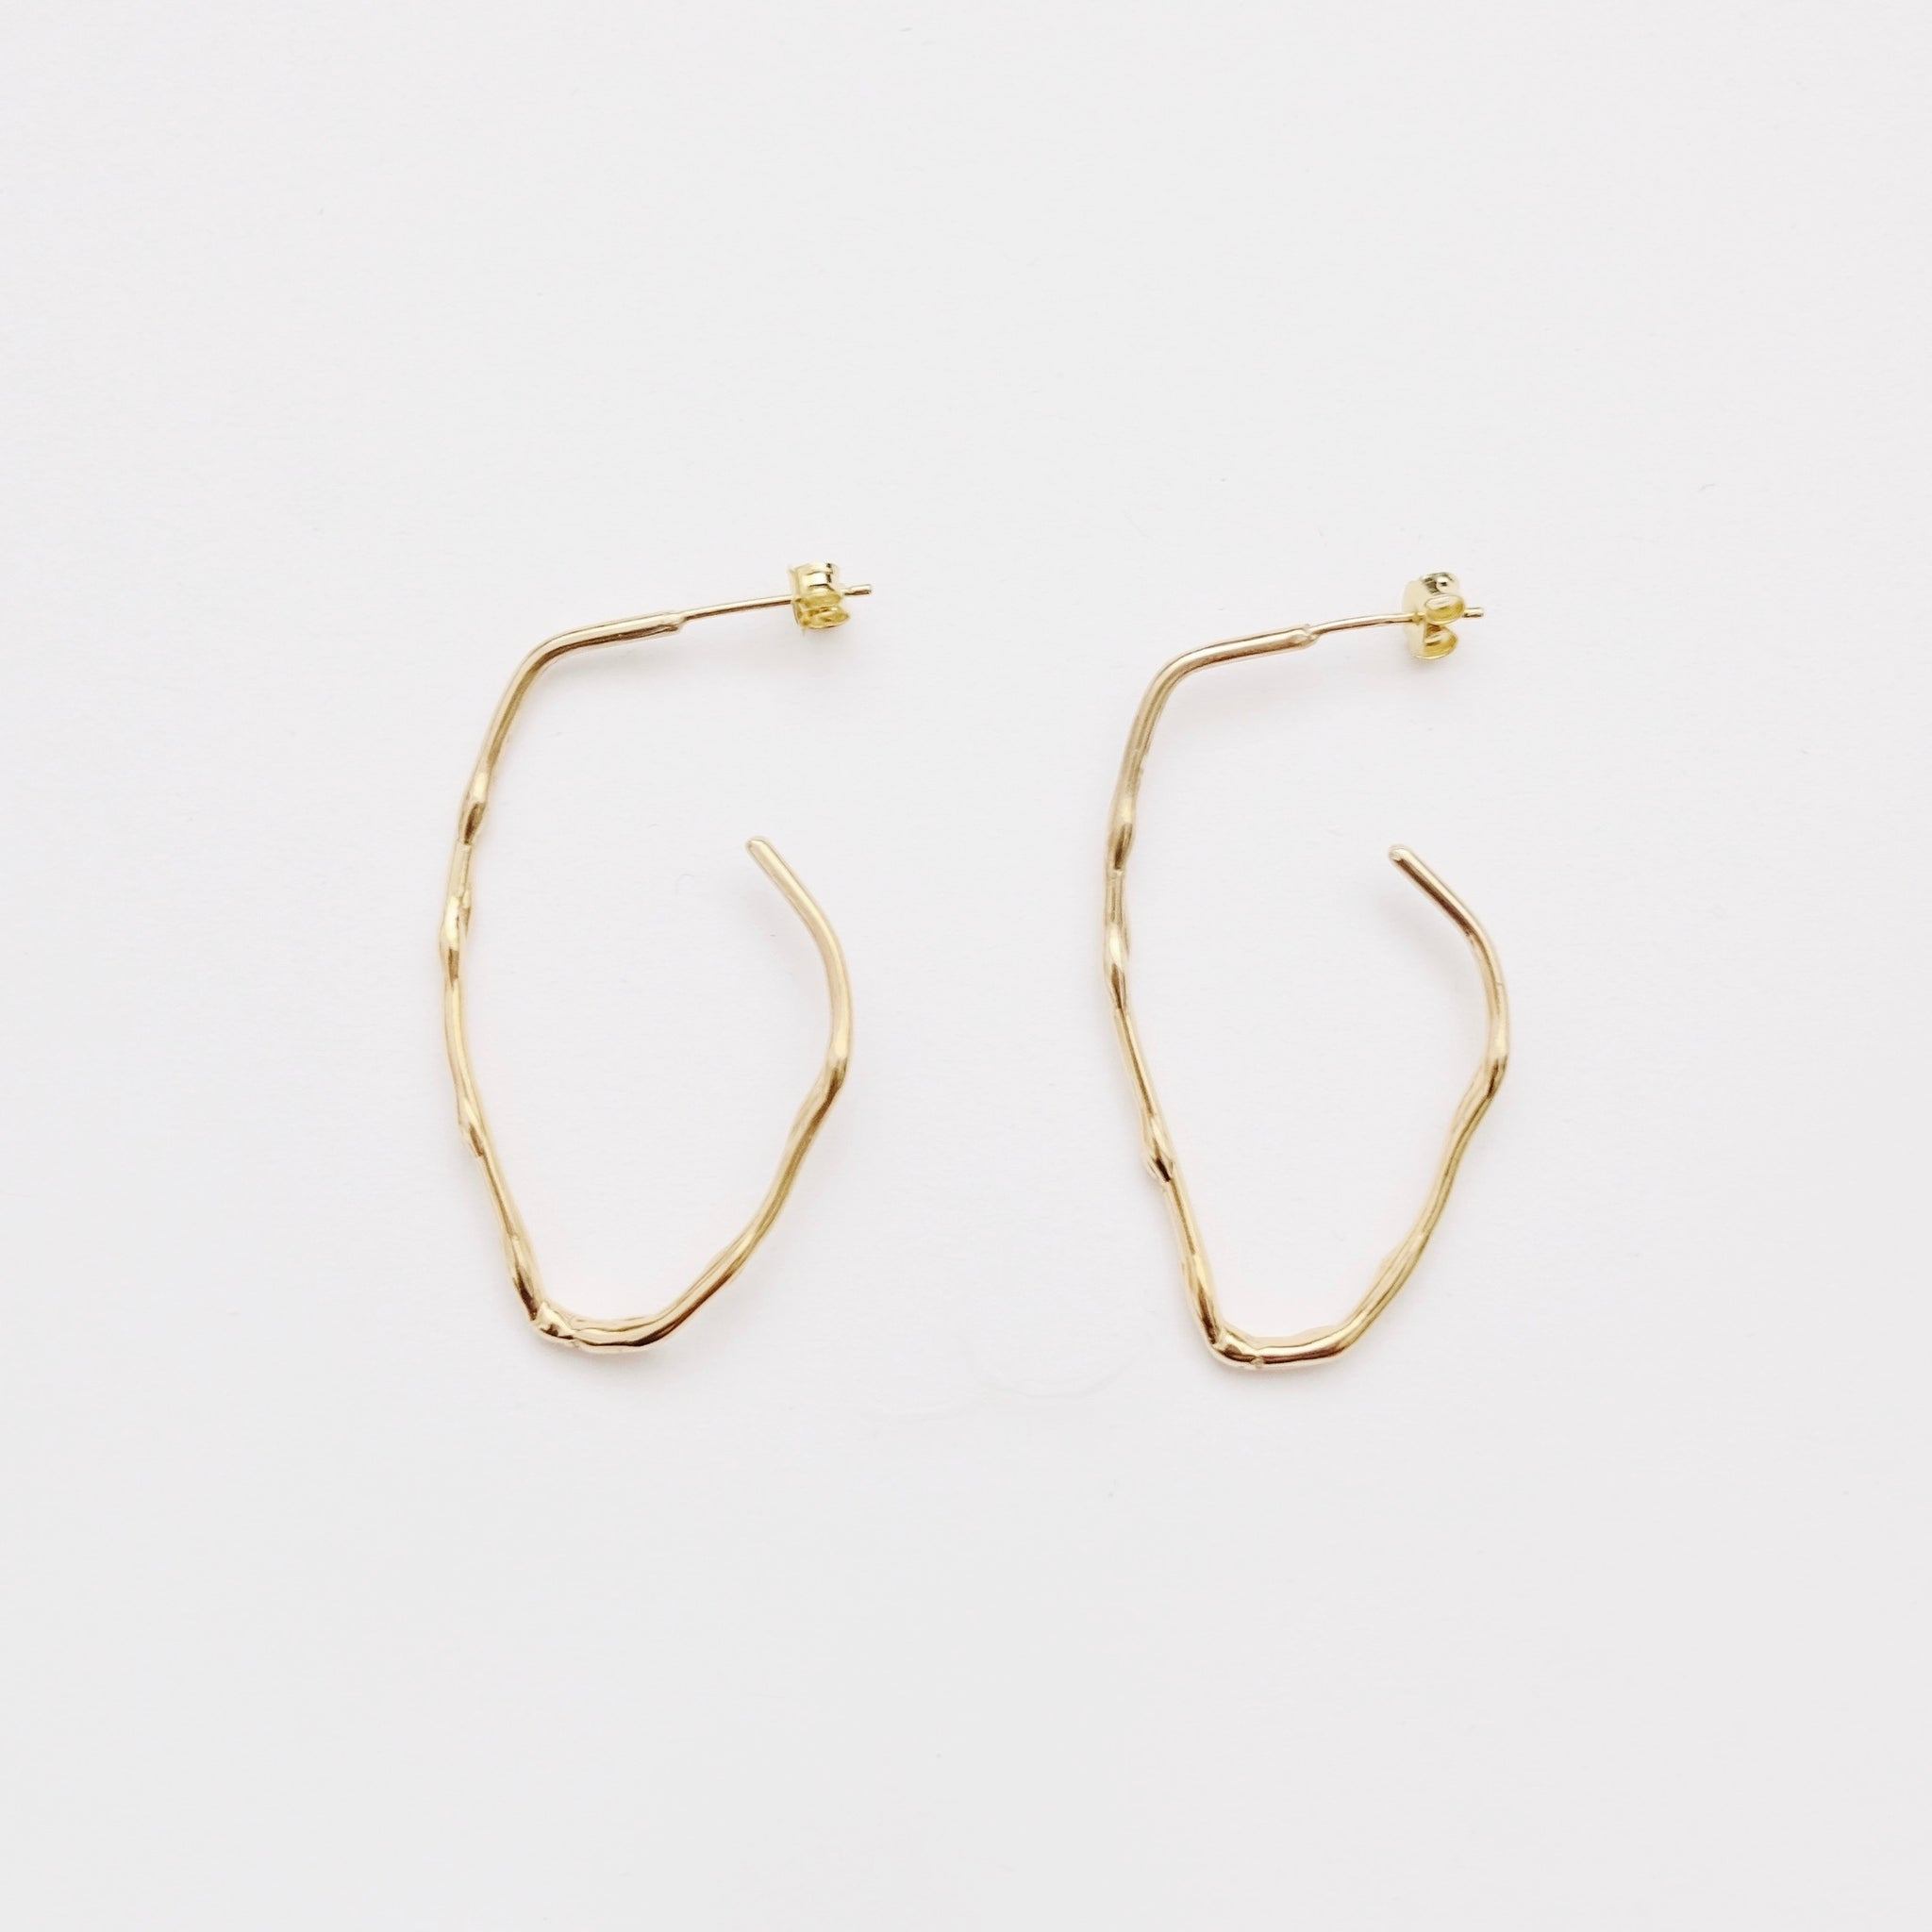 Calm Scent Earring - Gold (925 Silver)